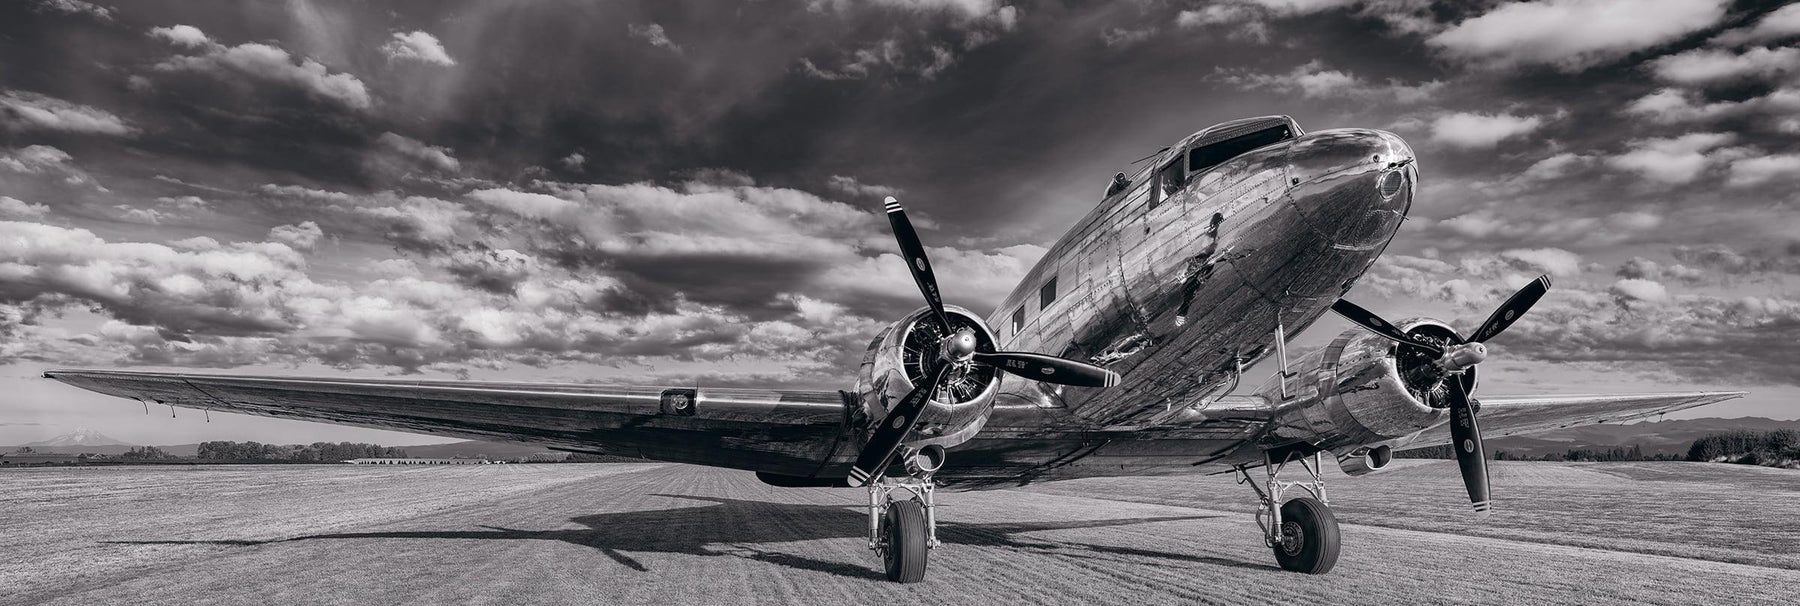 Black and white DC-3 airplane on a grass runway in Portland Oregon under a cloud filled sky